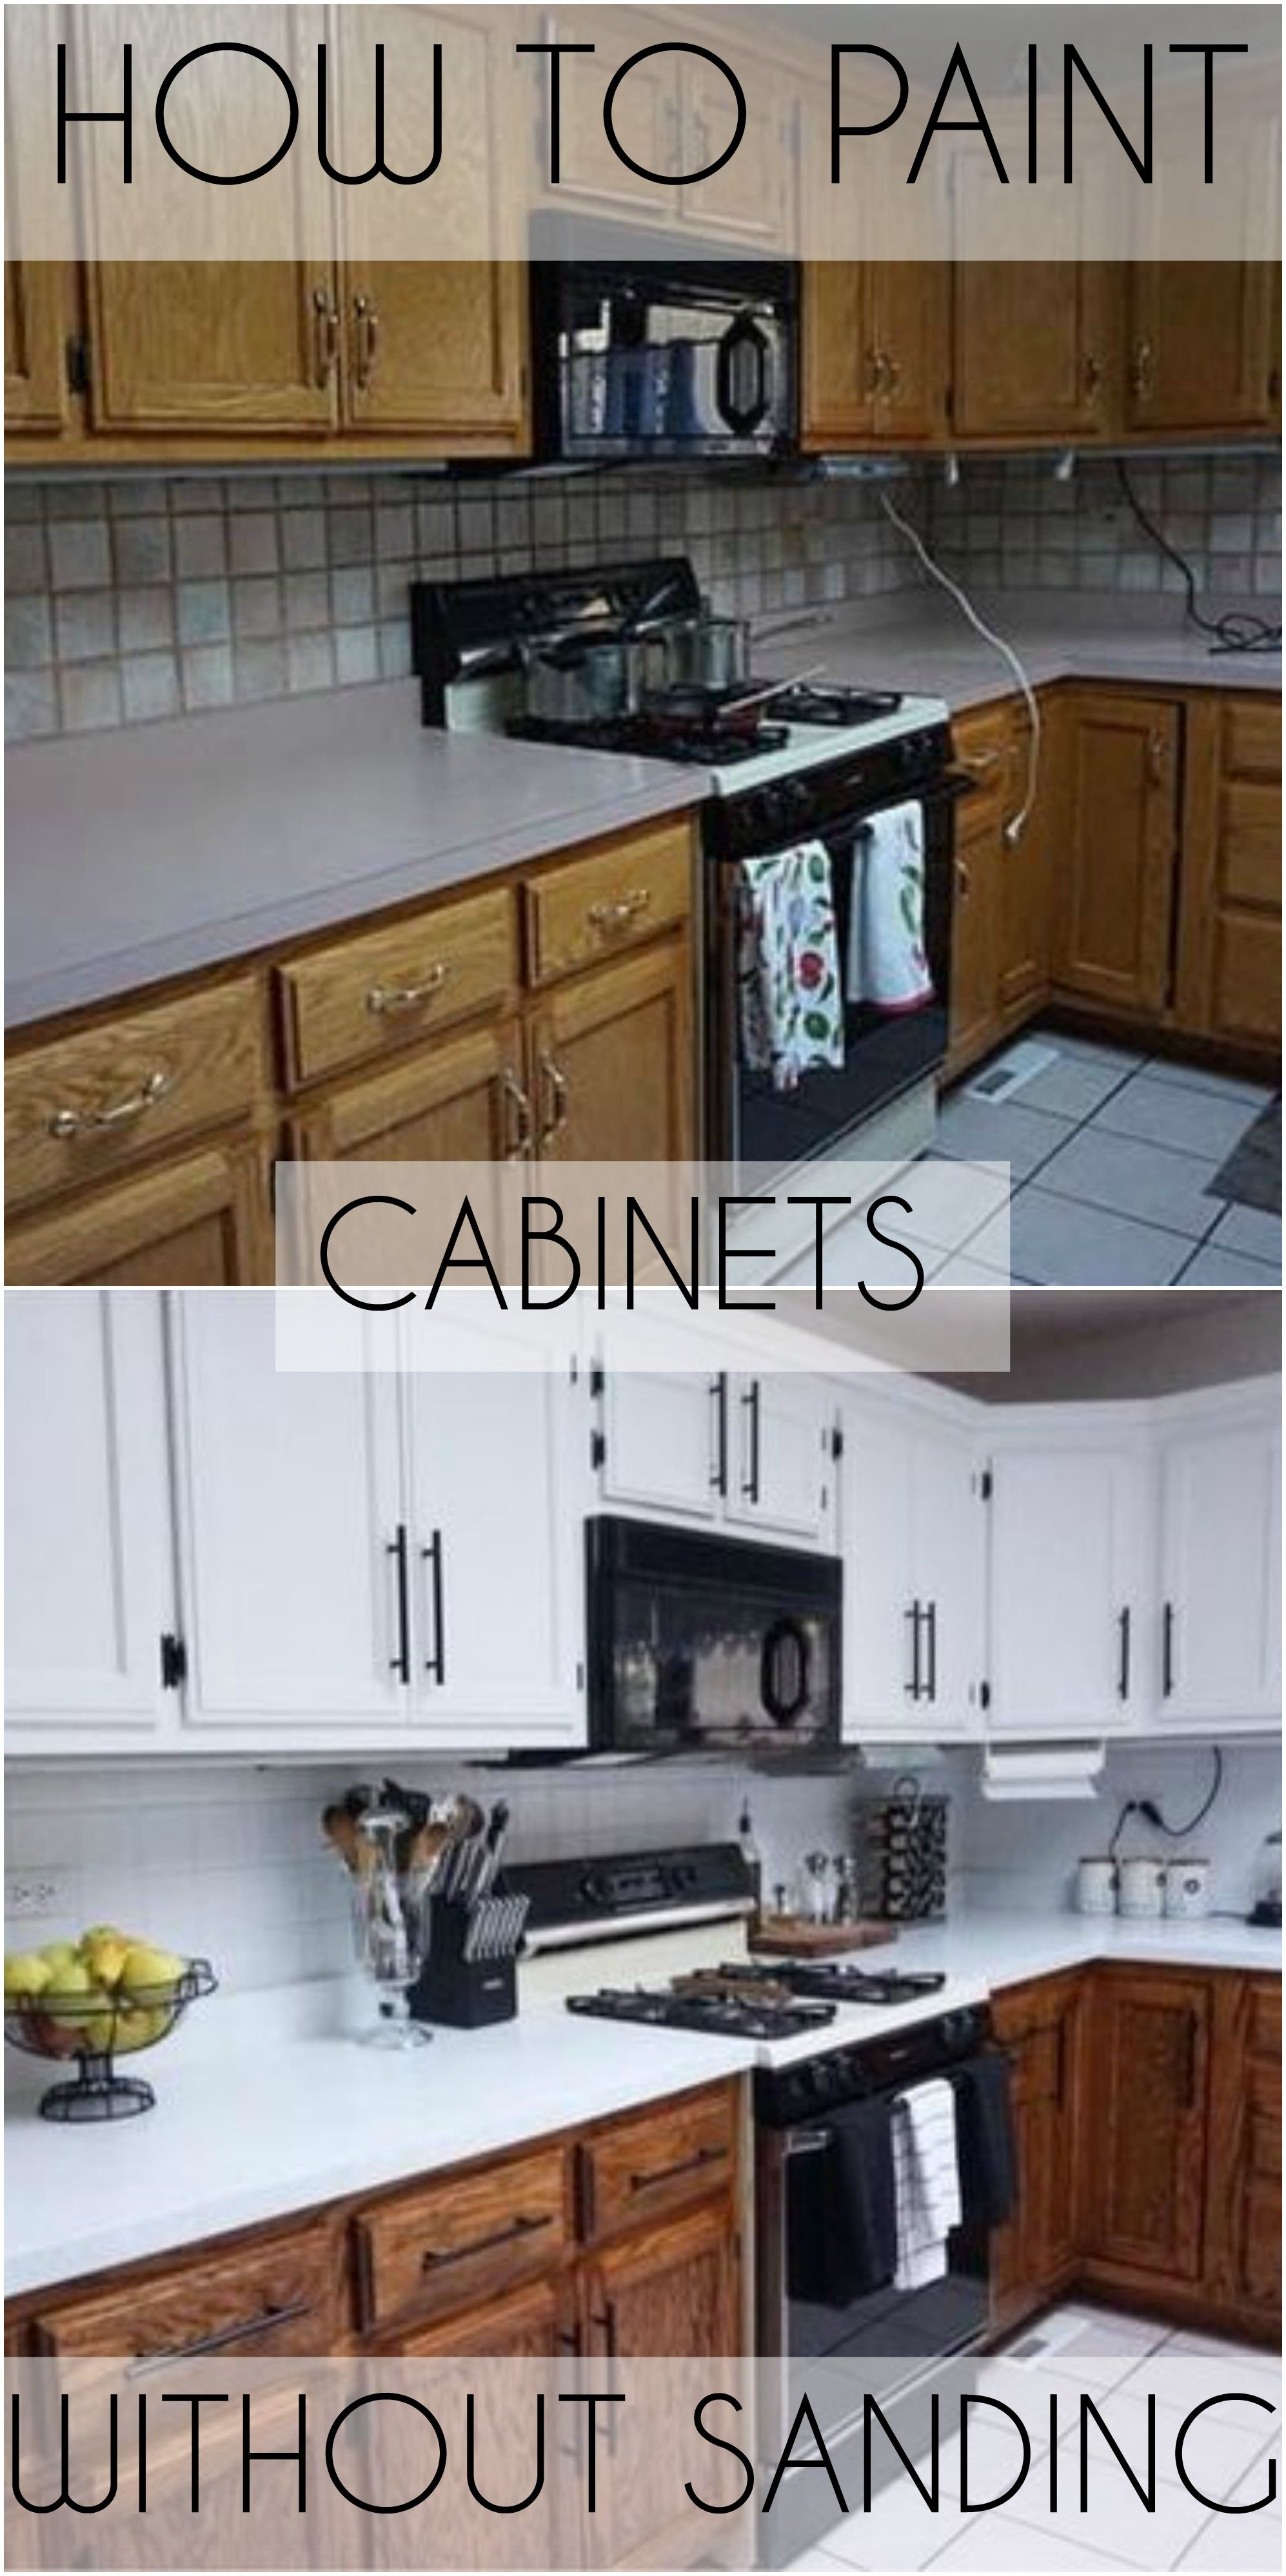 How I Painted My Cabinets Without Sanding Video Painting Kitchen Cabinets White Stained Kitchen Cabinets New Kitchen Cabinets